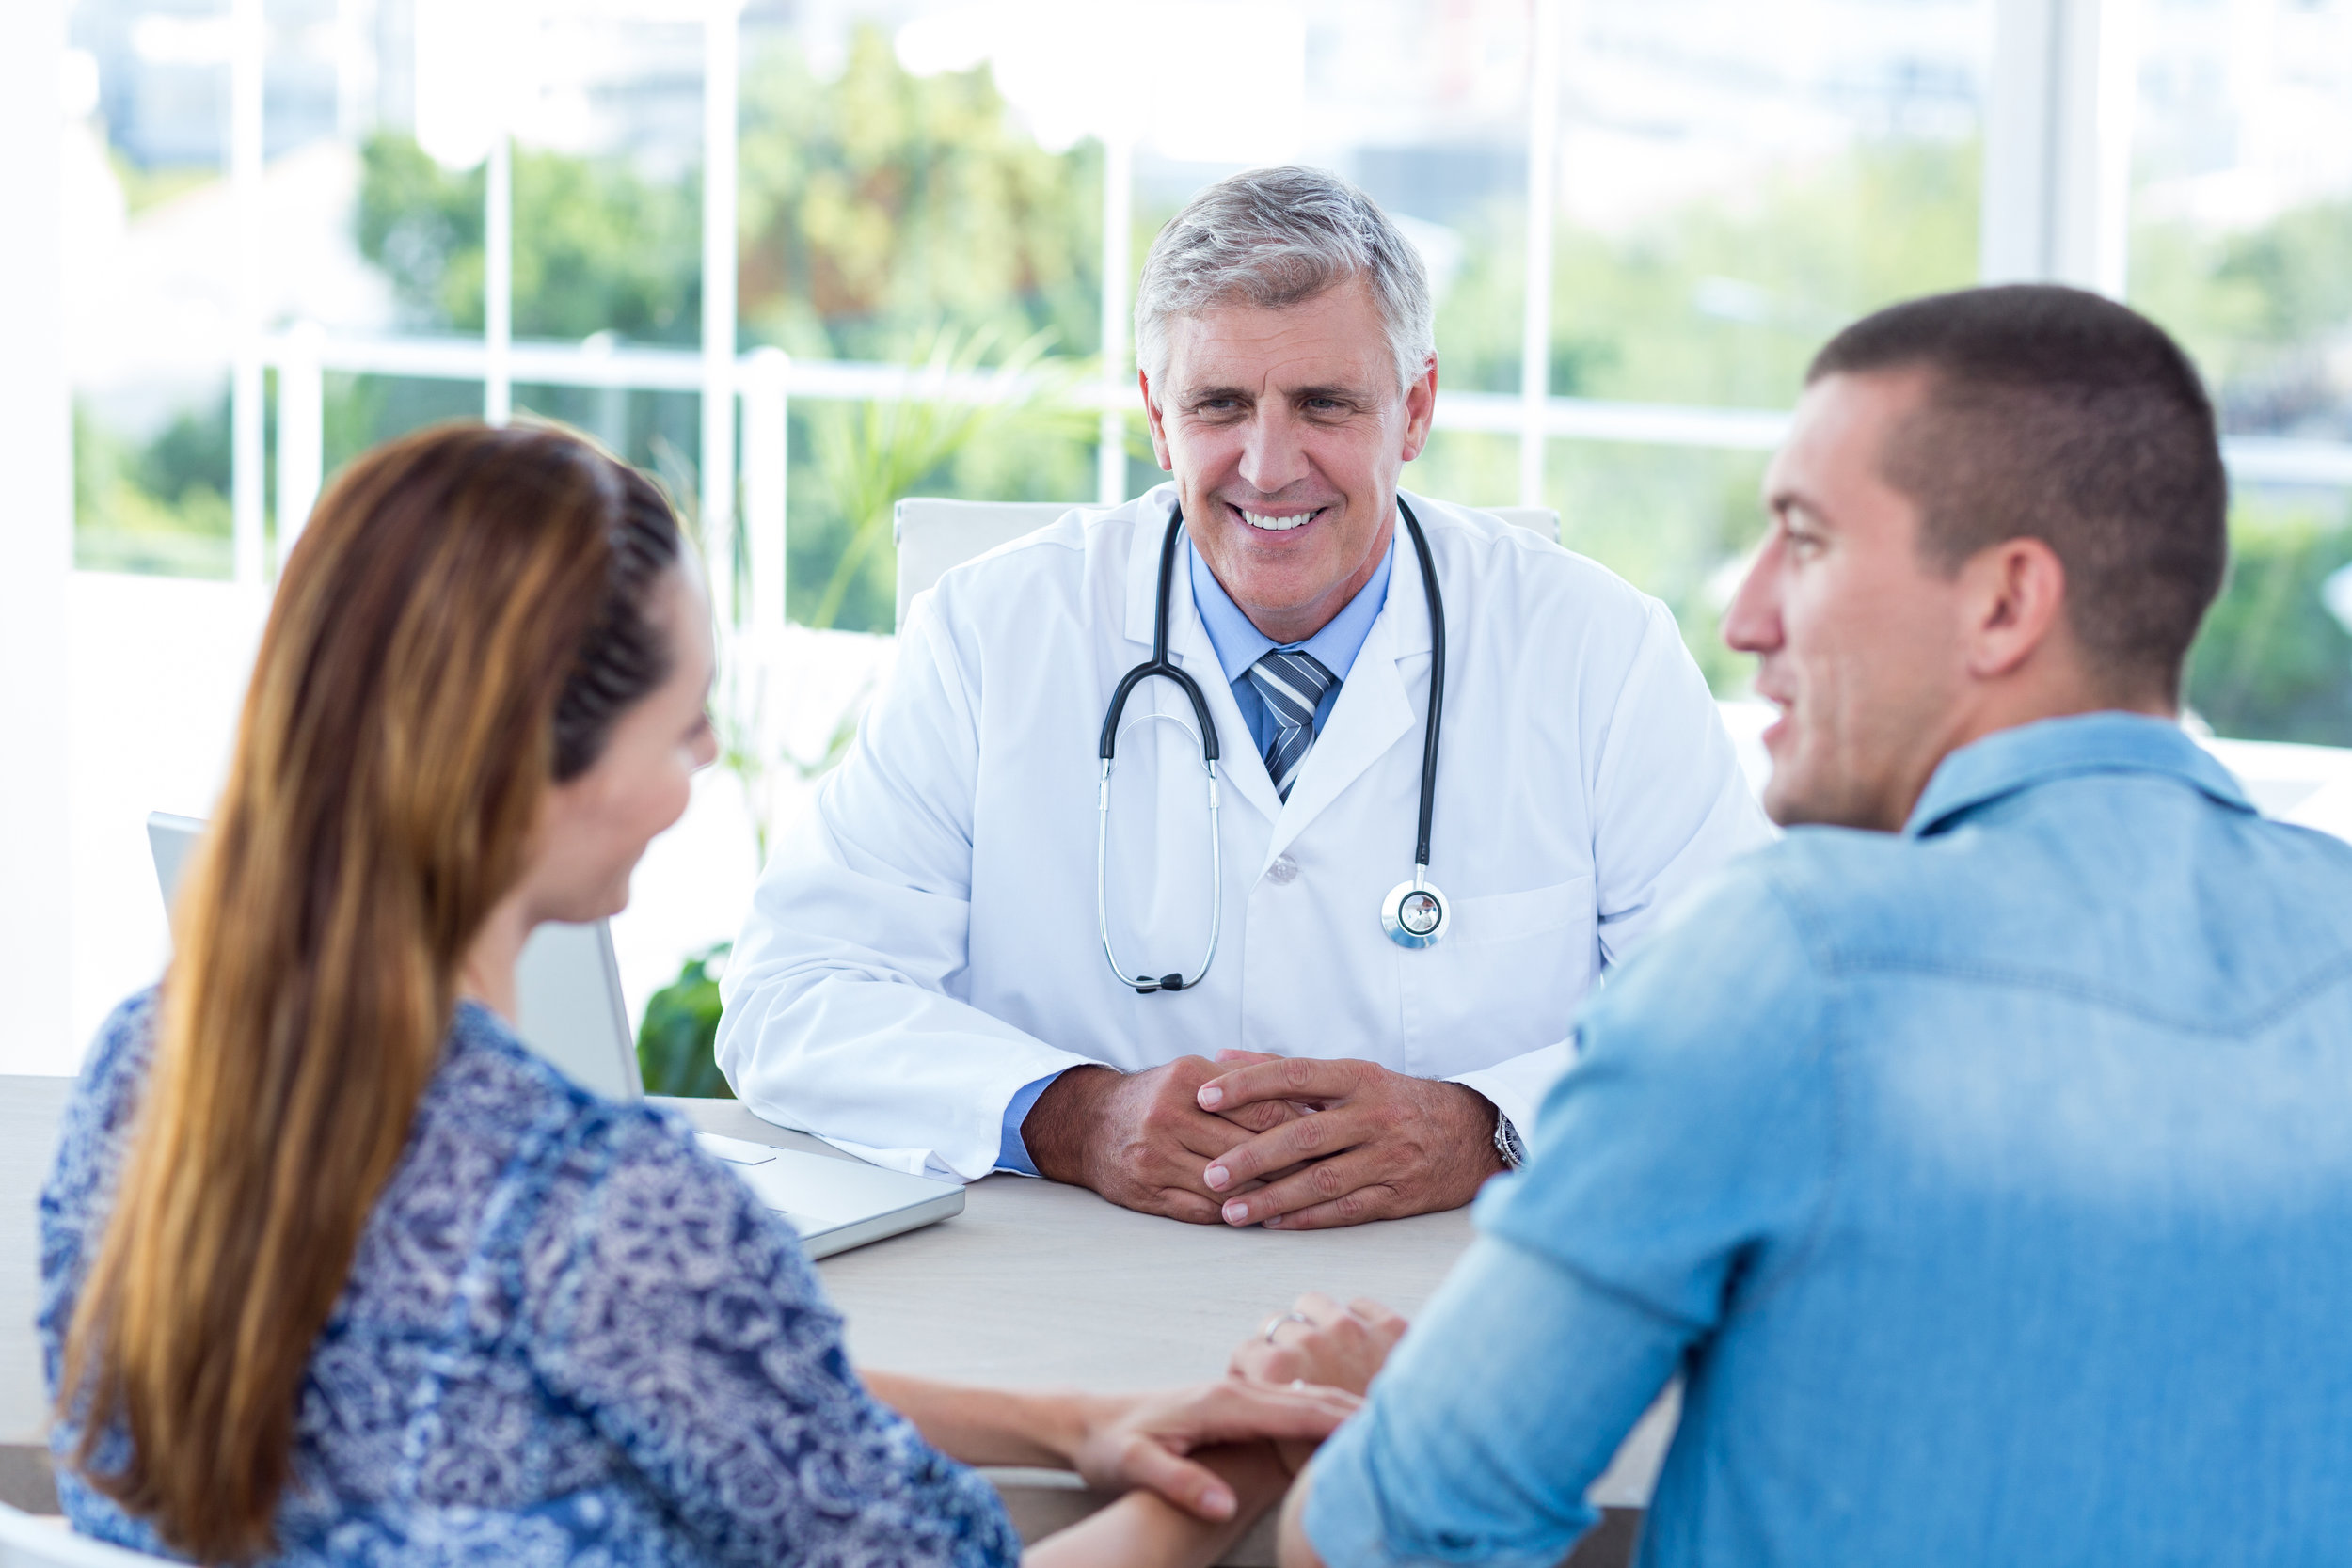 A kind doctor meeting with a young couple about their health during a doctor's appointment